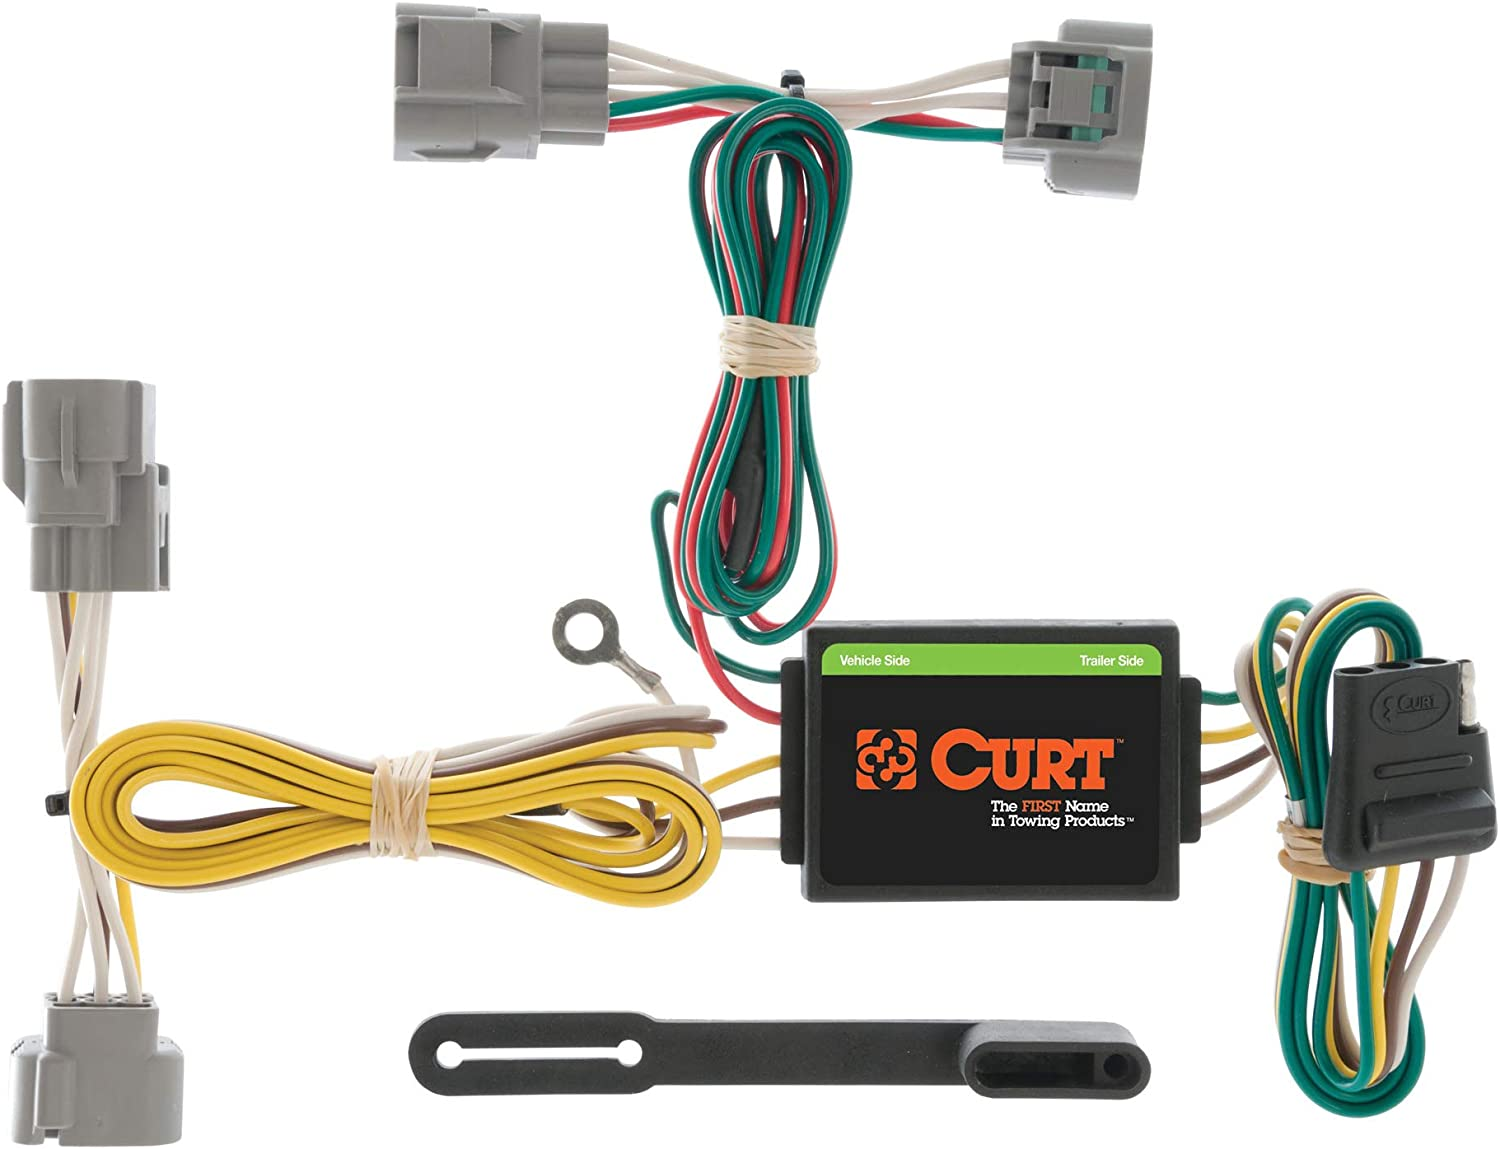 [WLLP_2054]   Amazon.com: CURT 55513 Vehicle-Side Custom 4-Pin Trailer Wiring Harness,  Select Toyota Tacoma, T100, Hilux: Automotive | 2009 Toyota Tacoma Trailer Wiring |  | Amazon.com